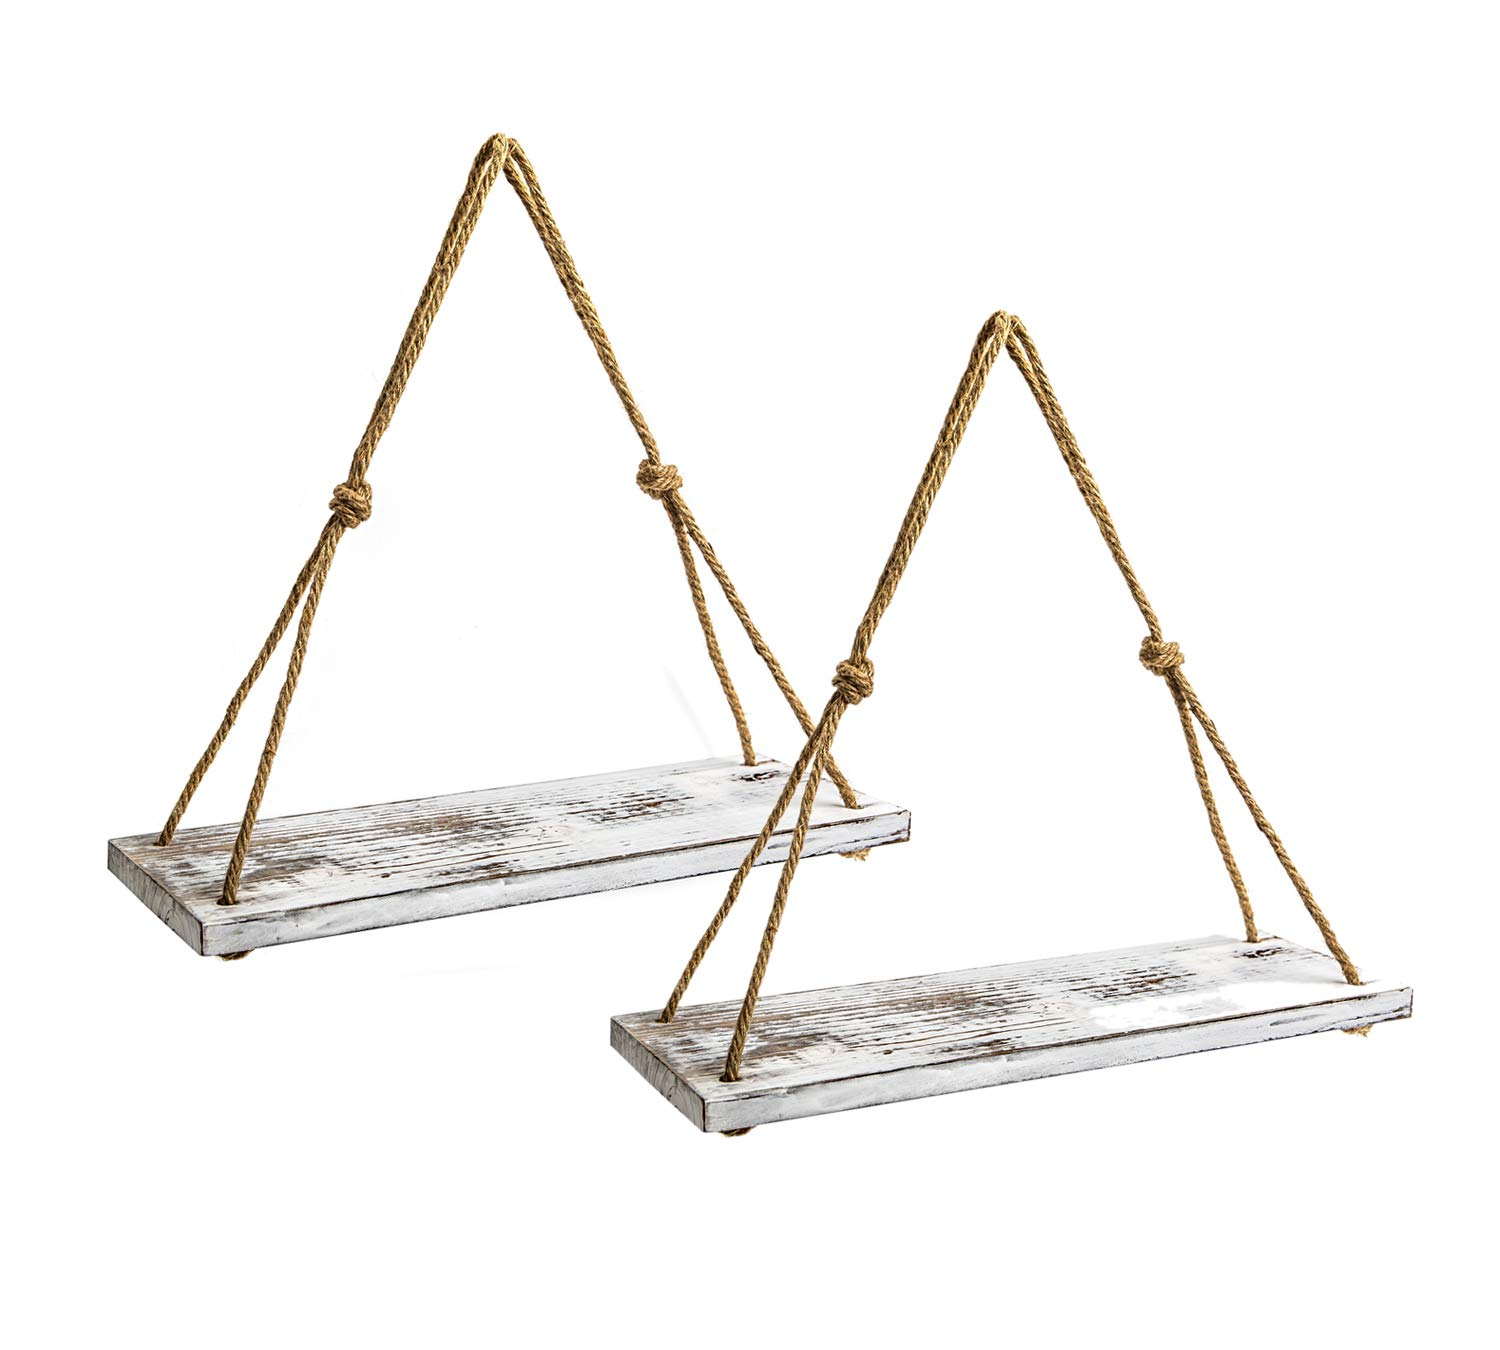 Y&ME Set of 2 Wood Hanging Shelves for Wall,White Rope Hanging Shelves with 4 Hooks for Home Wall Decor, 17''x 6''x 0.7'',Rustic White Hanging Shelf